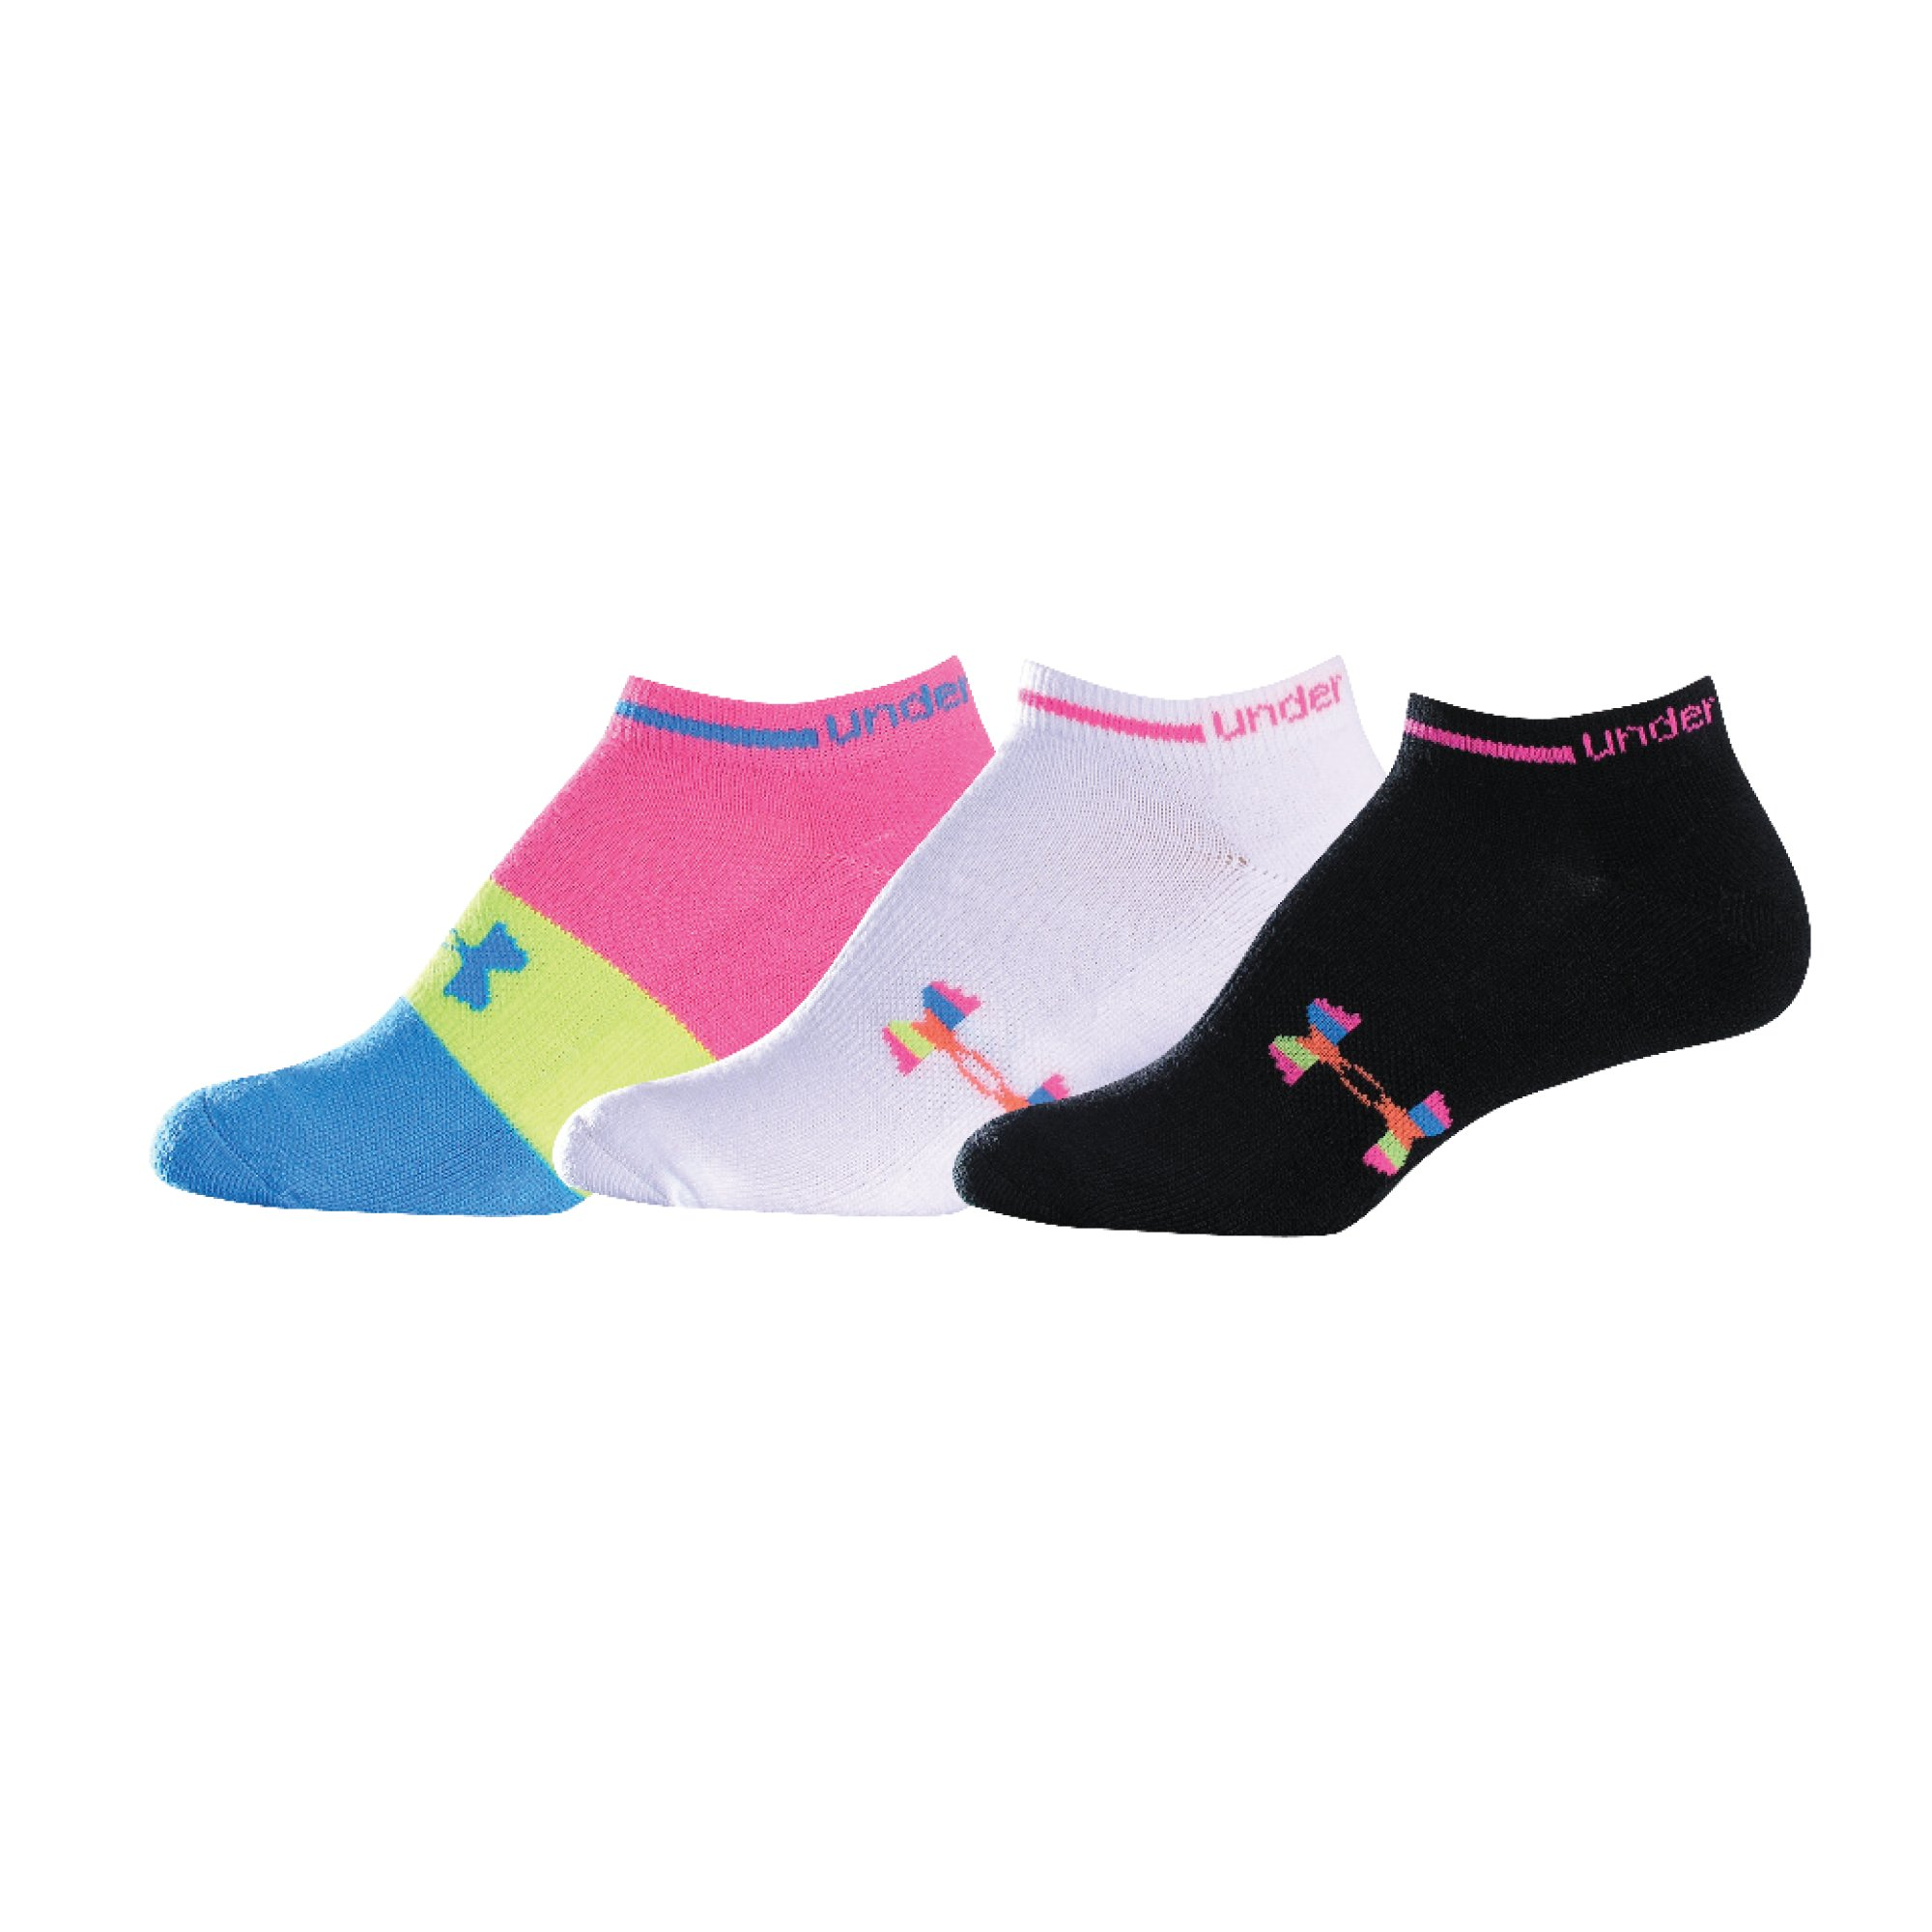 Women's Recur No-Show Socks, White